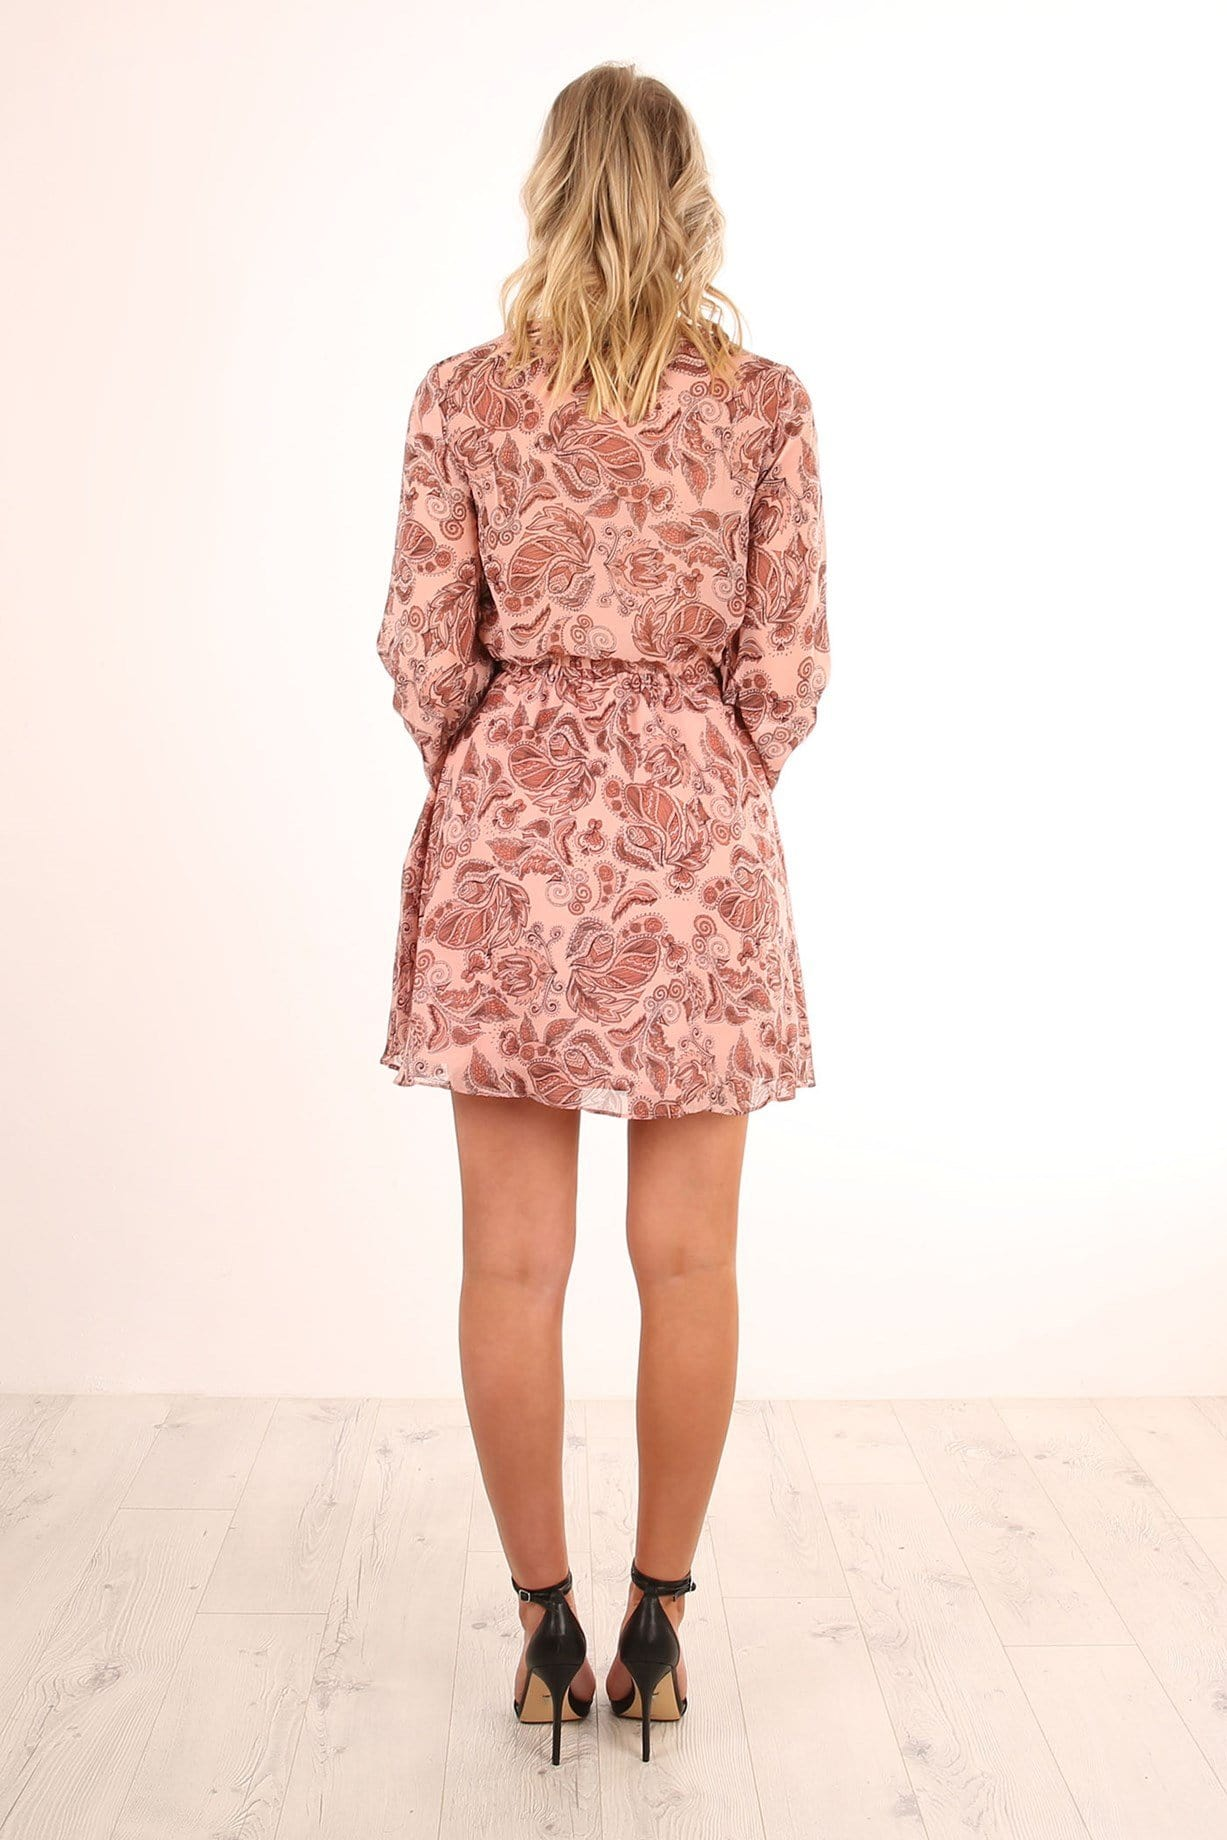 Siren Calls Dress Dusty Paisley Print